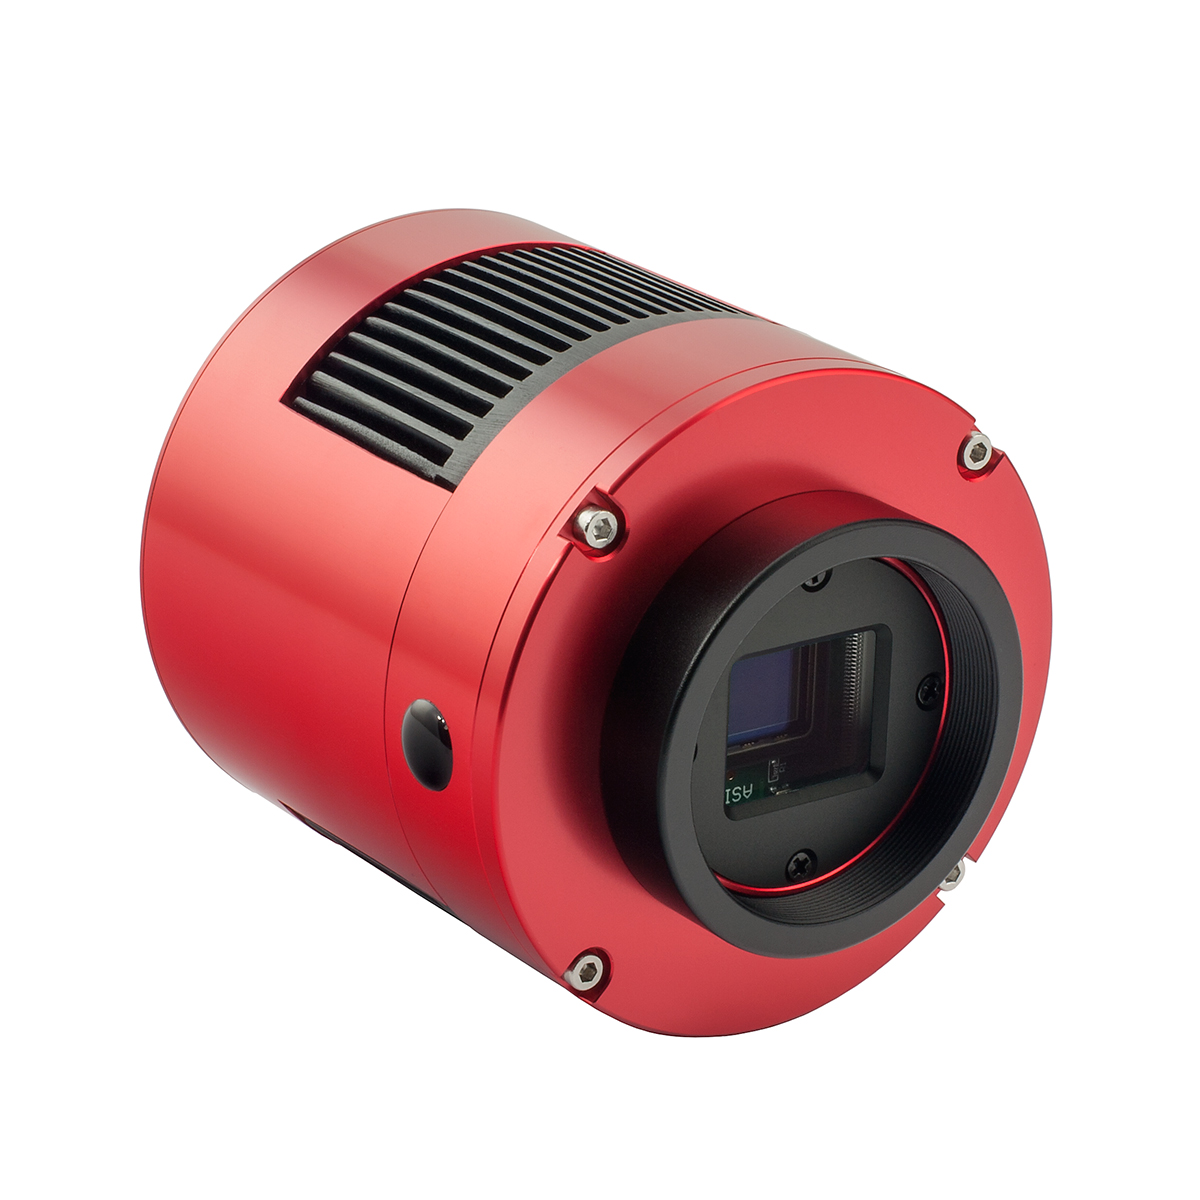 ZWO ASI 183MC-PRO USB 3.0 Cooled Colour Camera